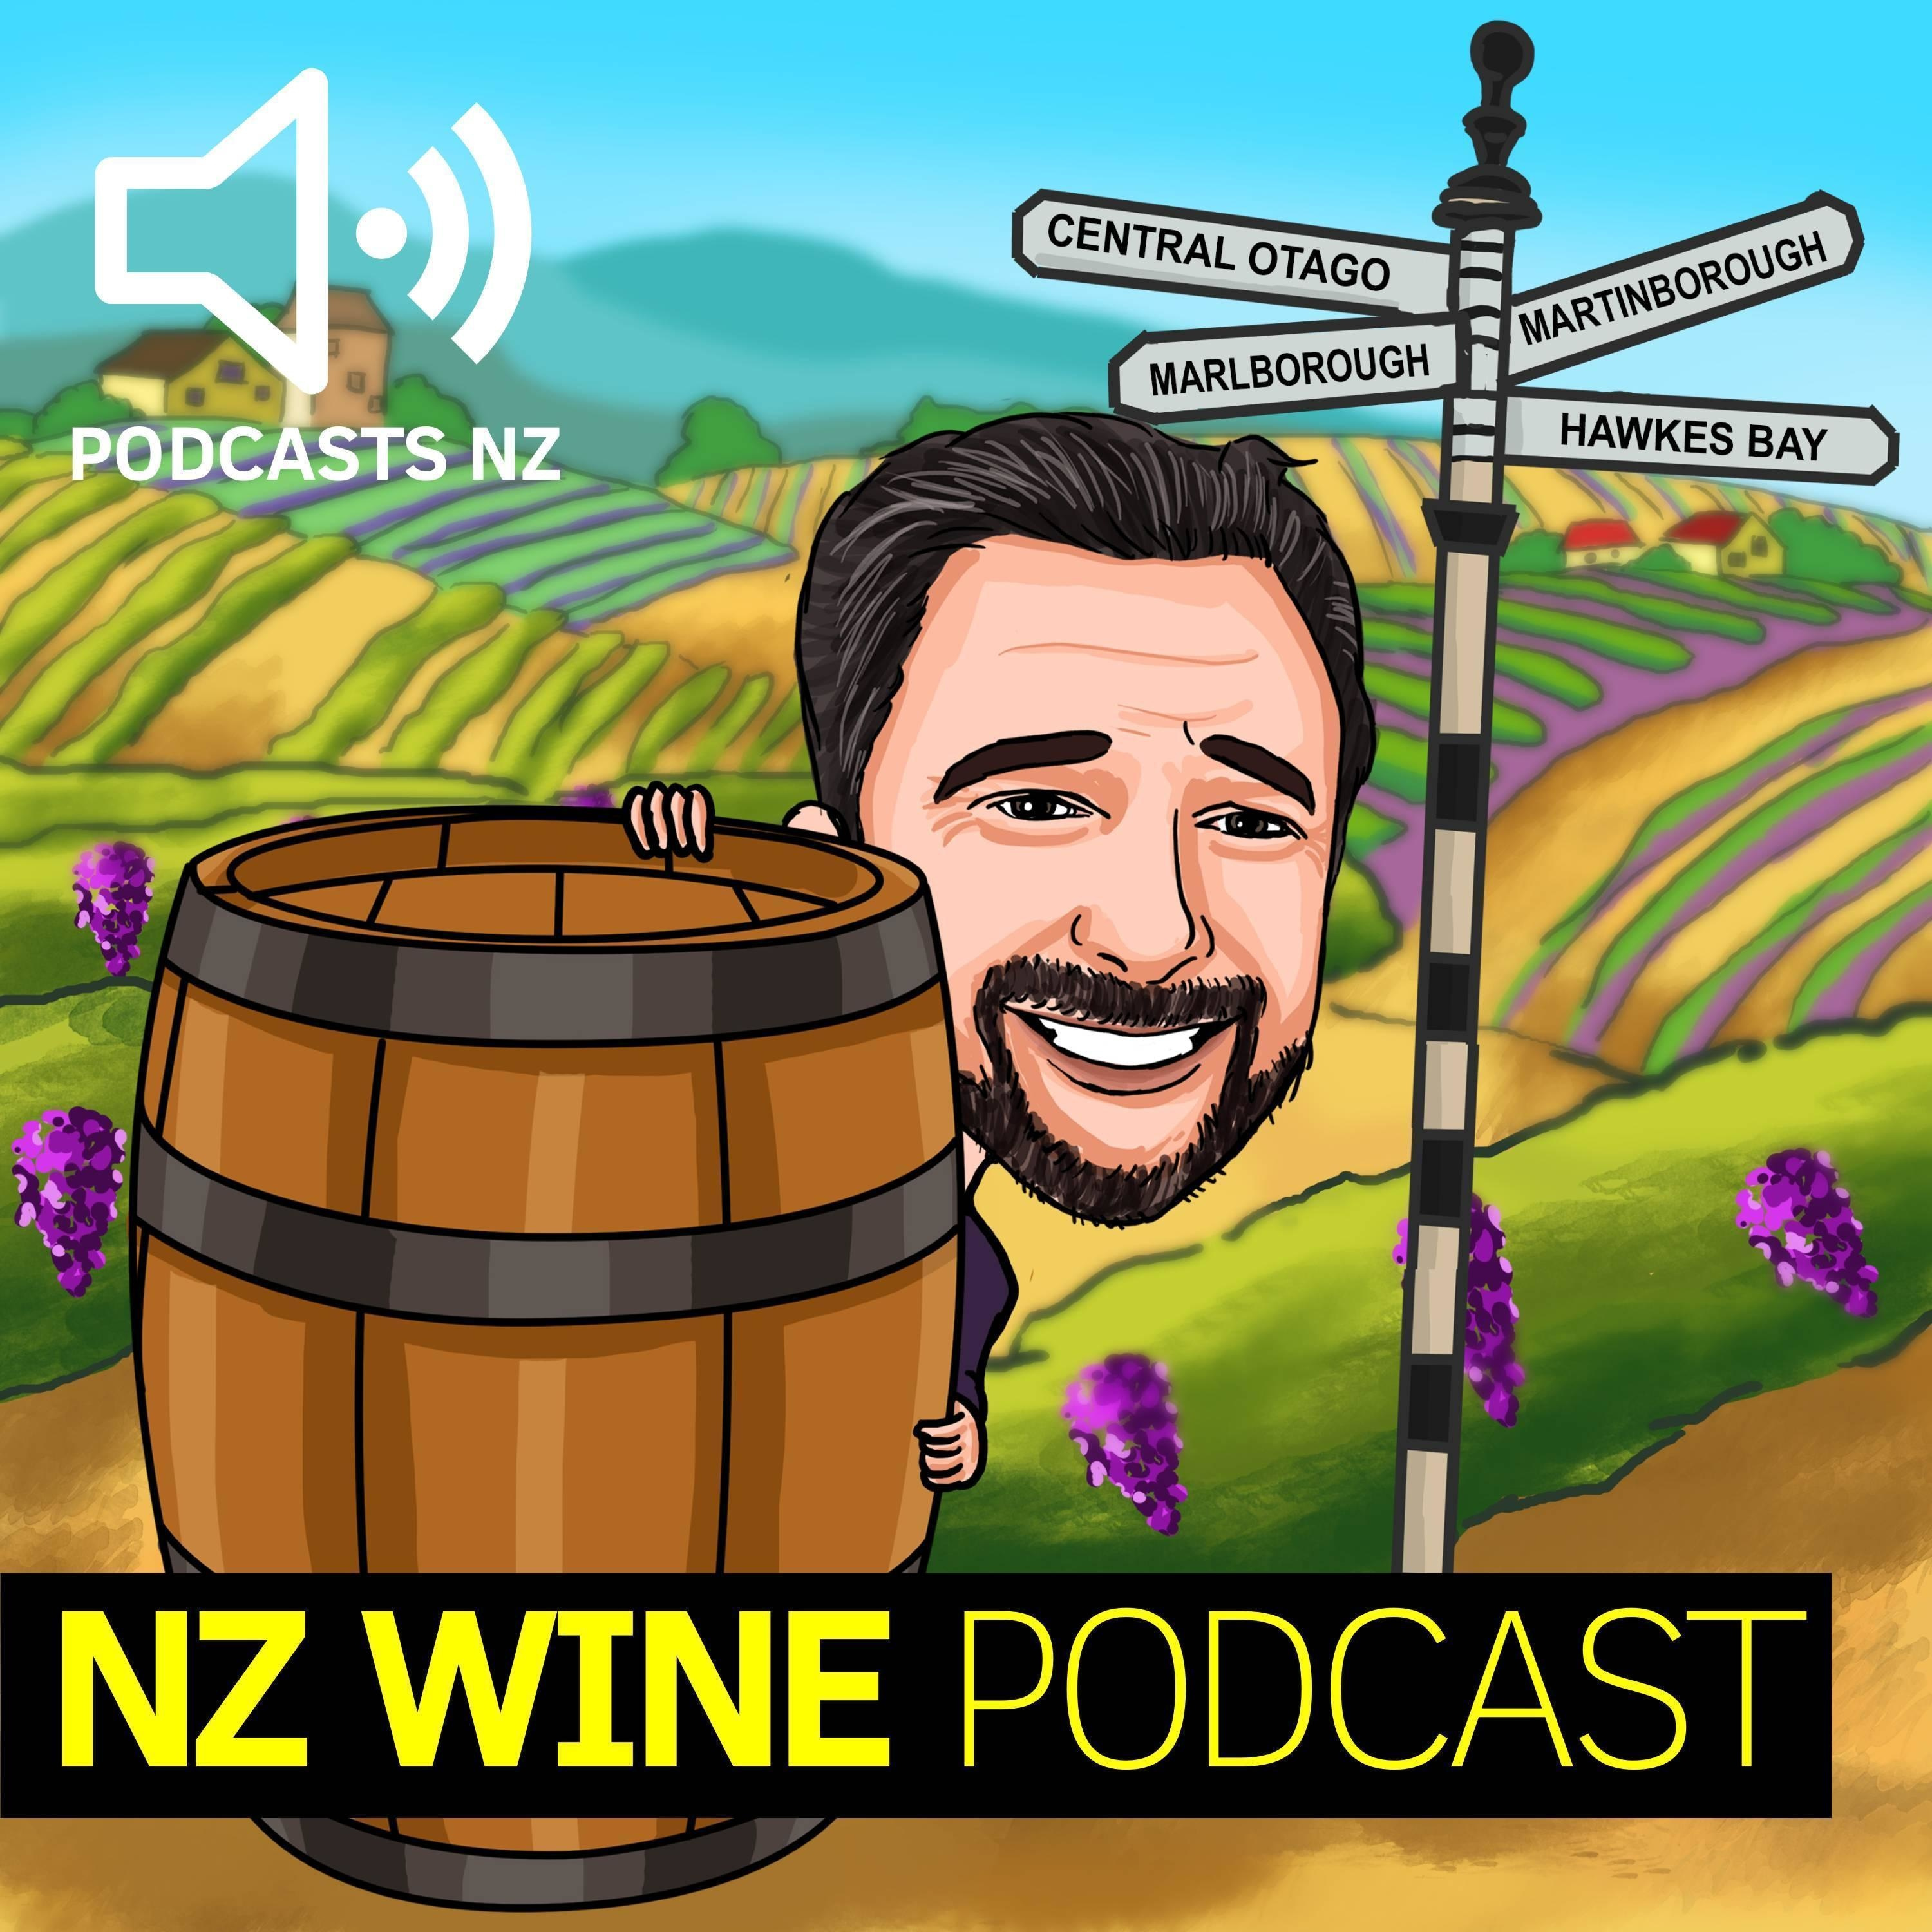 NZ Wine Podcast 37: Archangel Wines